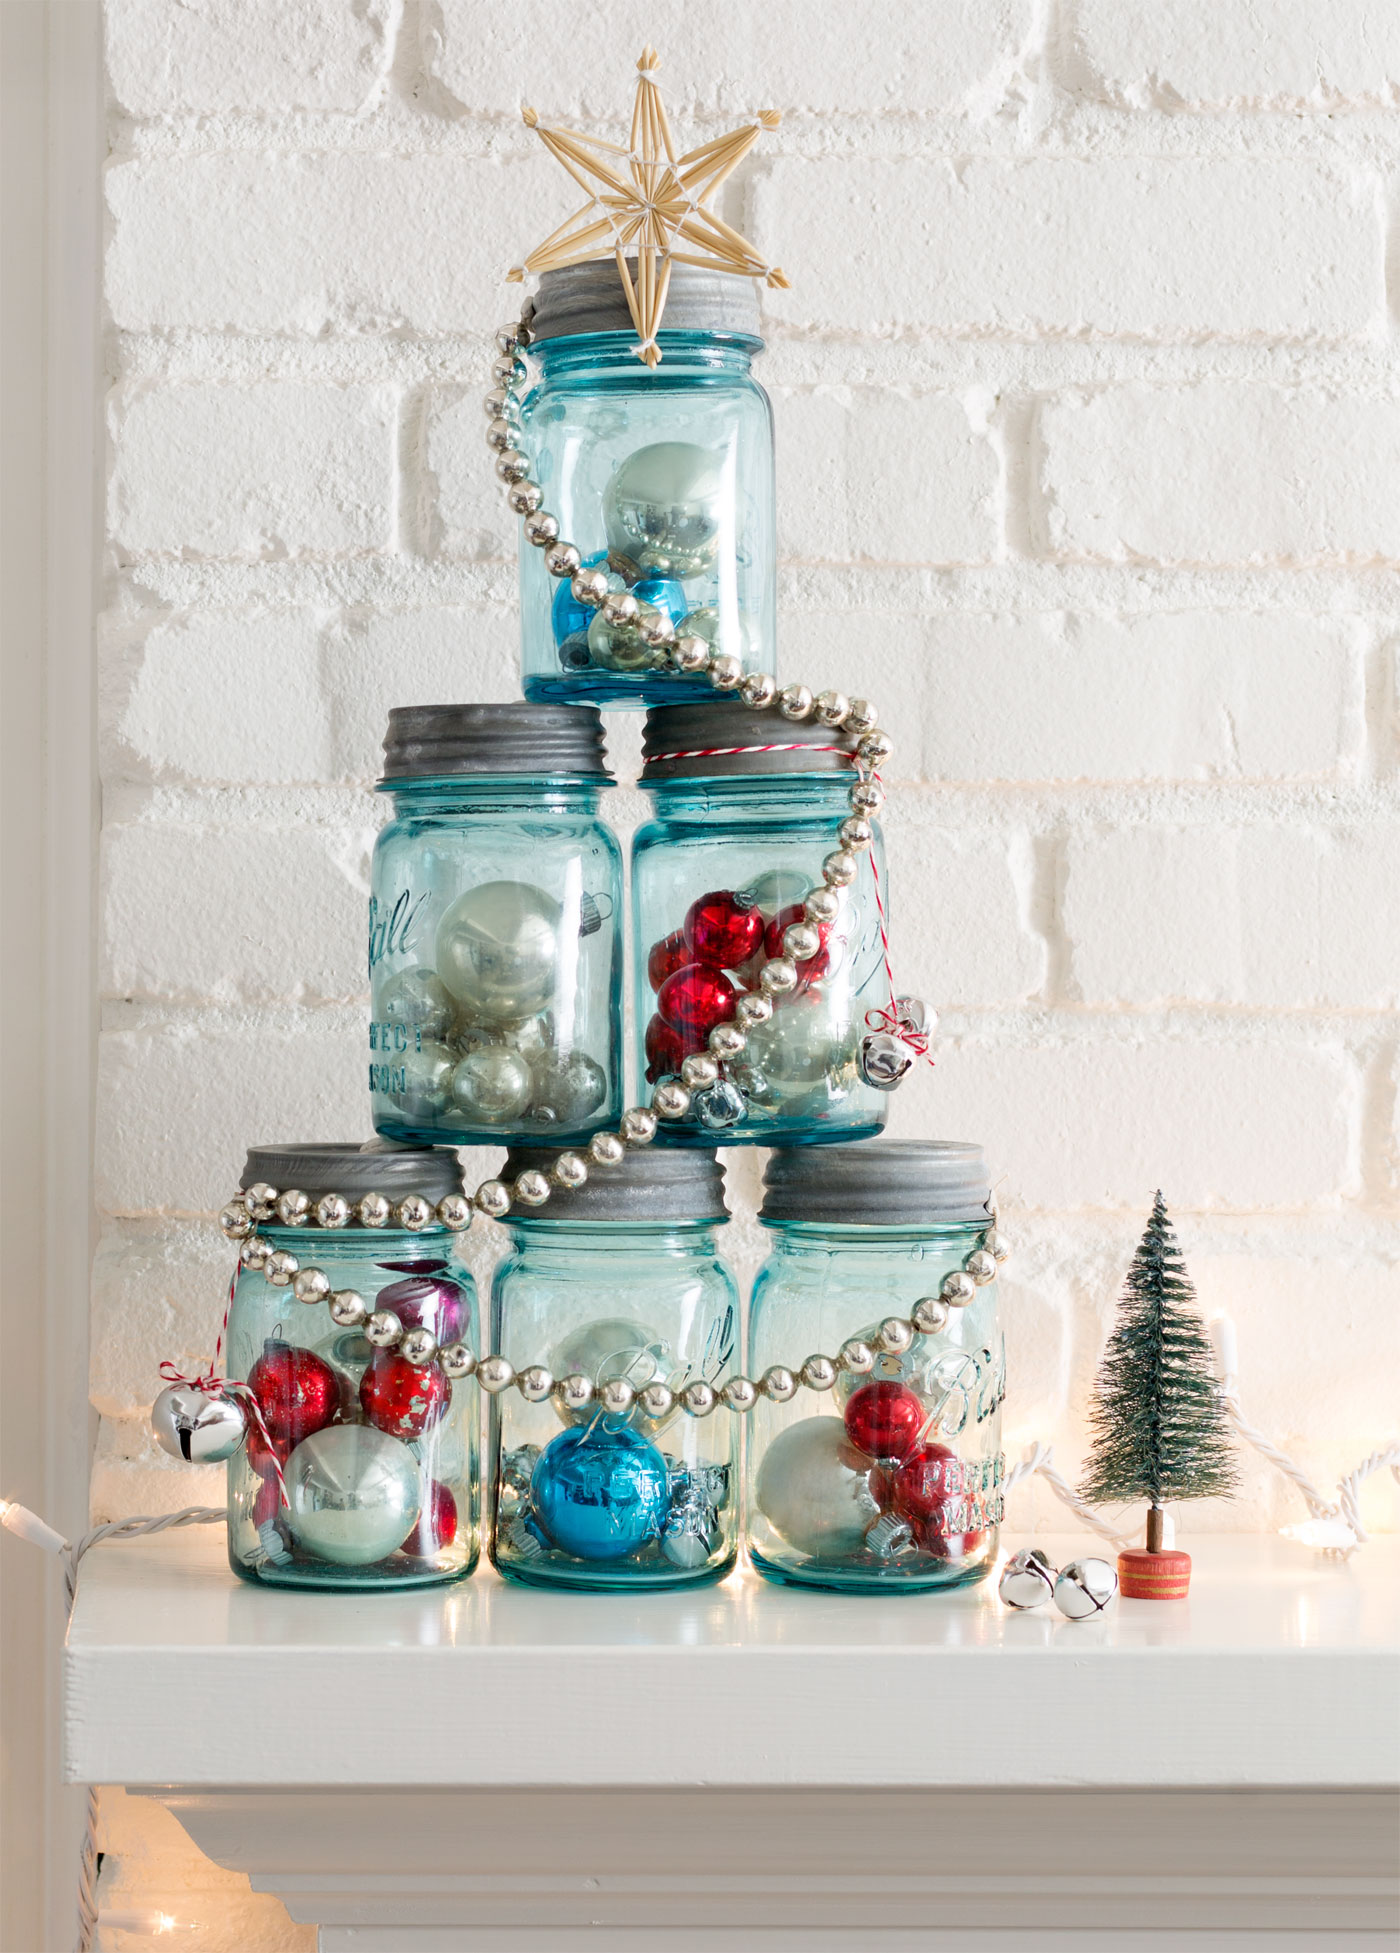 AD-Magical-Ways-To-Use-Mason-Jars-This-Christmas-12